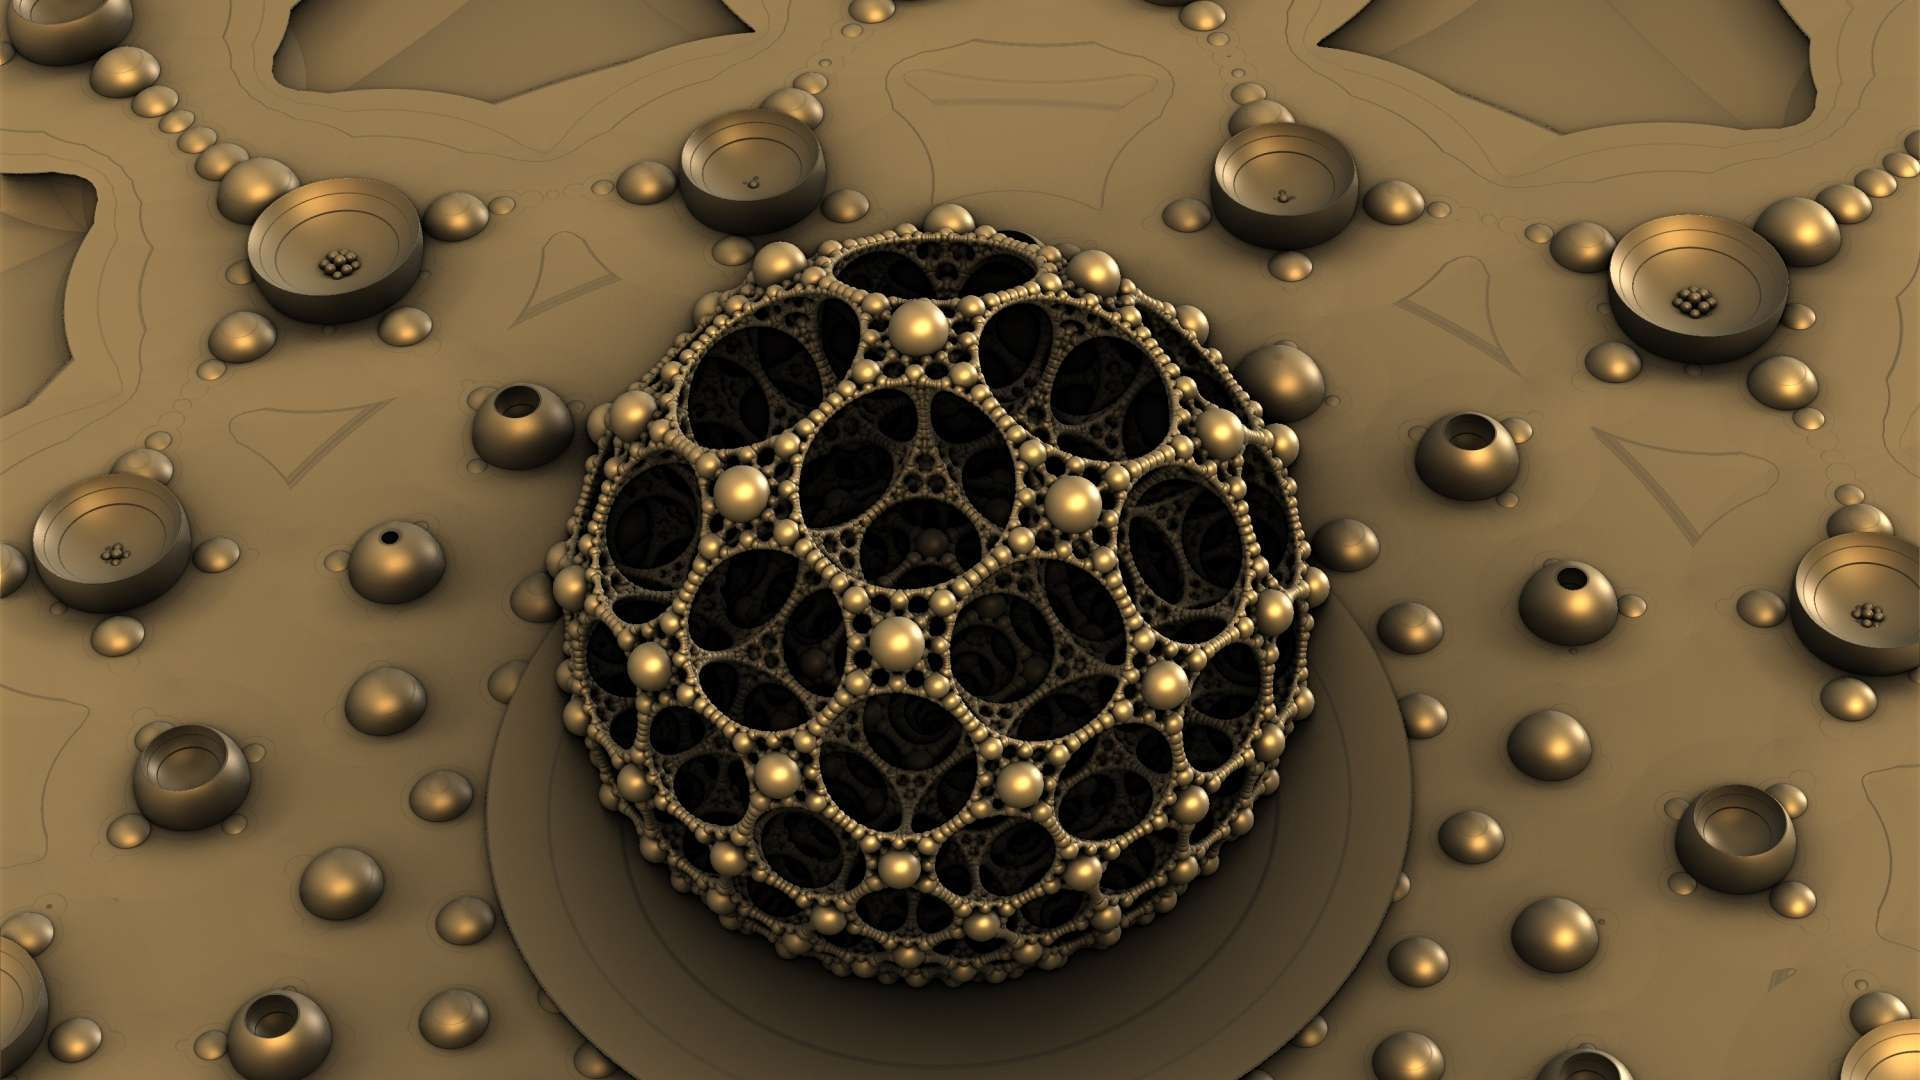 balls-fractal-shape-hd-1080p-1920%C3%971080-wallpaper-wpc9002564